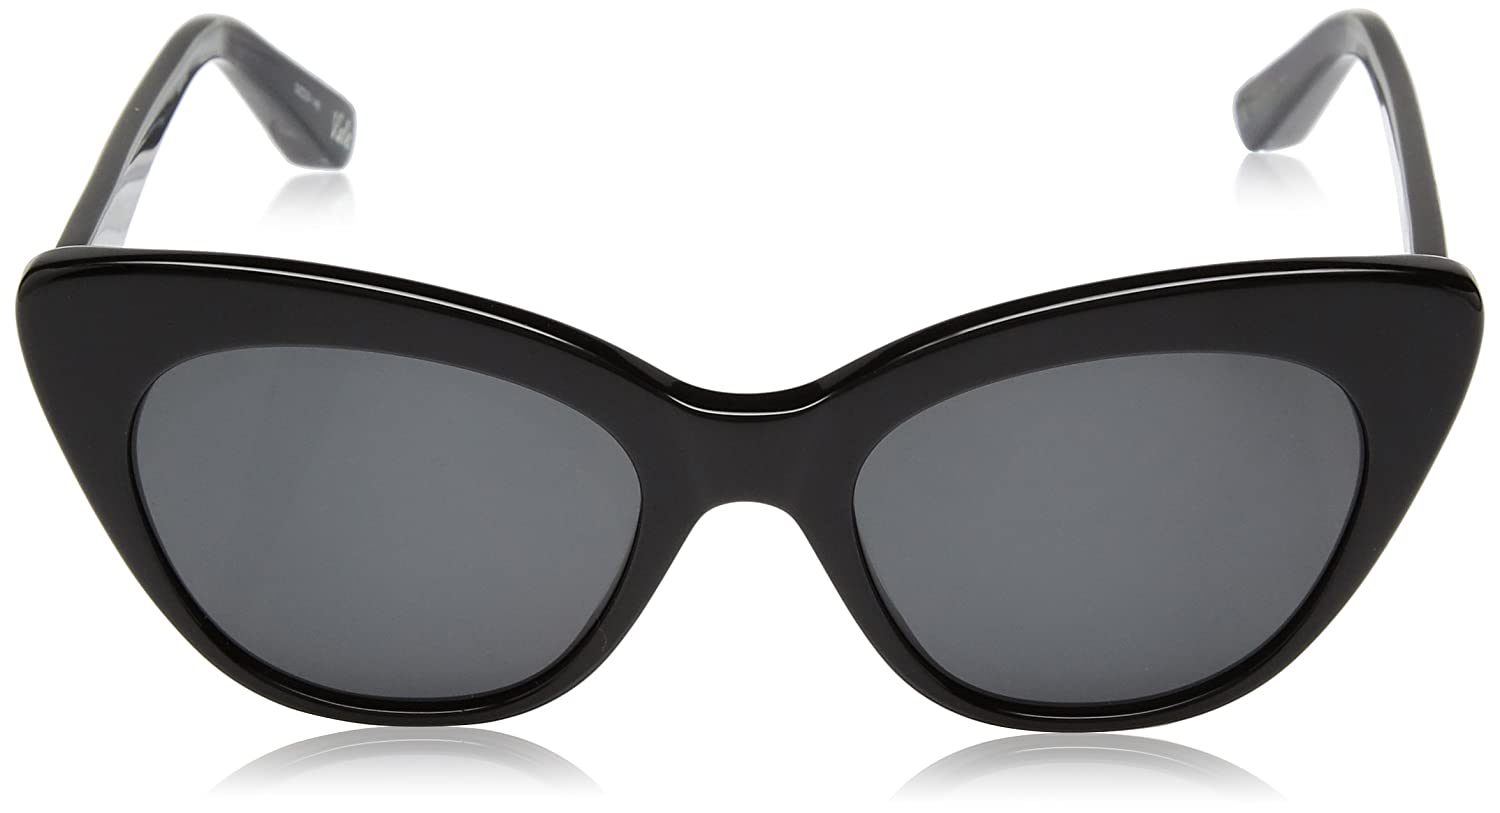 9ae8229b0d6fe Amazon.com  Elizabeth and James Women s Vale Cateye Sunglasses Black 51 mm   Clothing